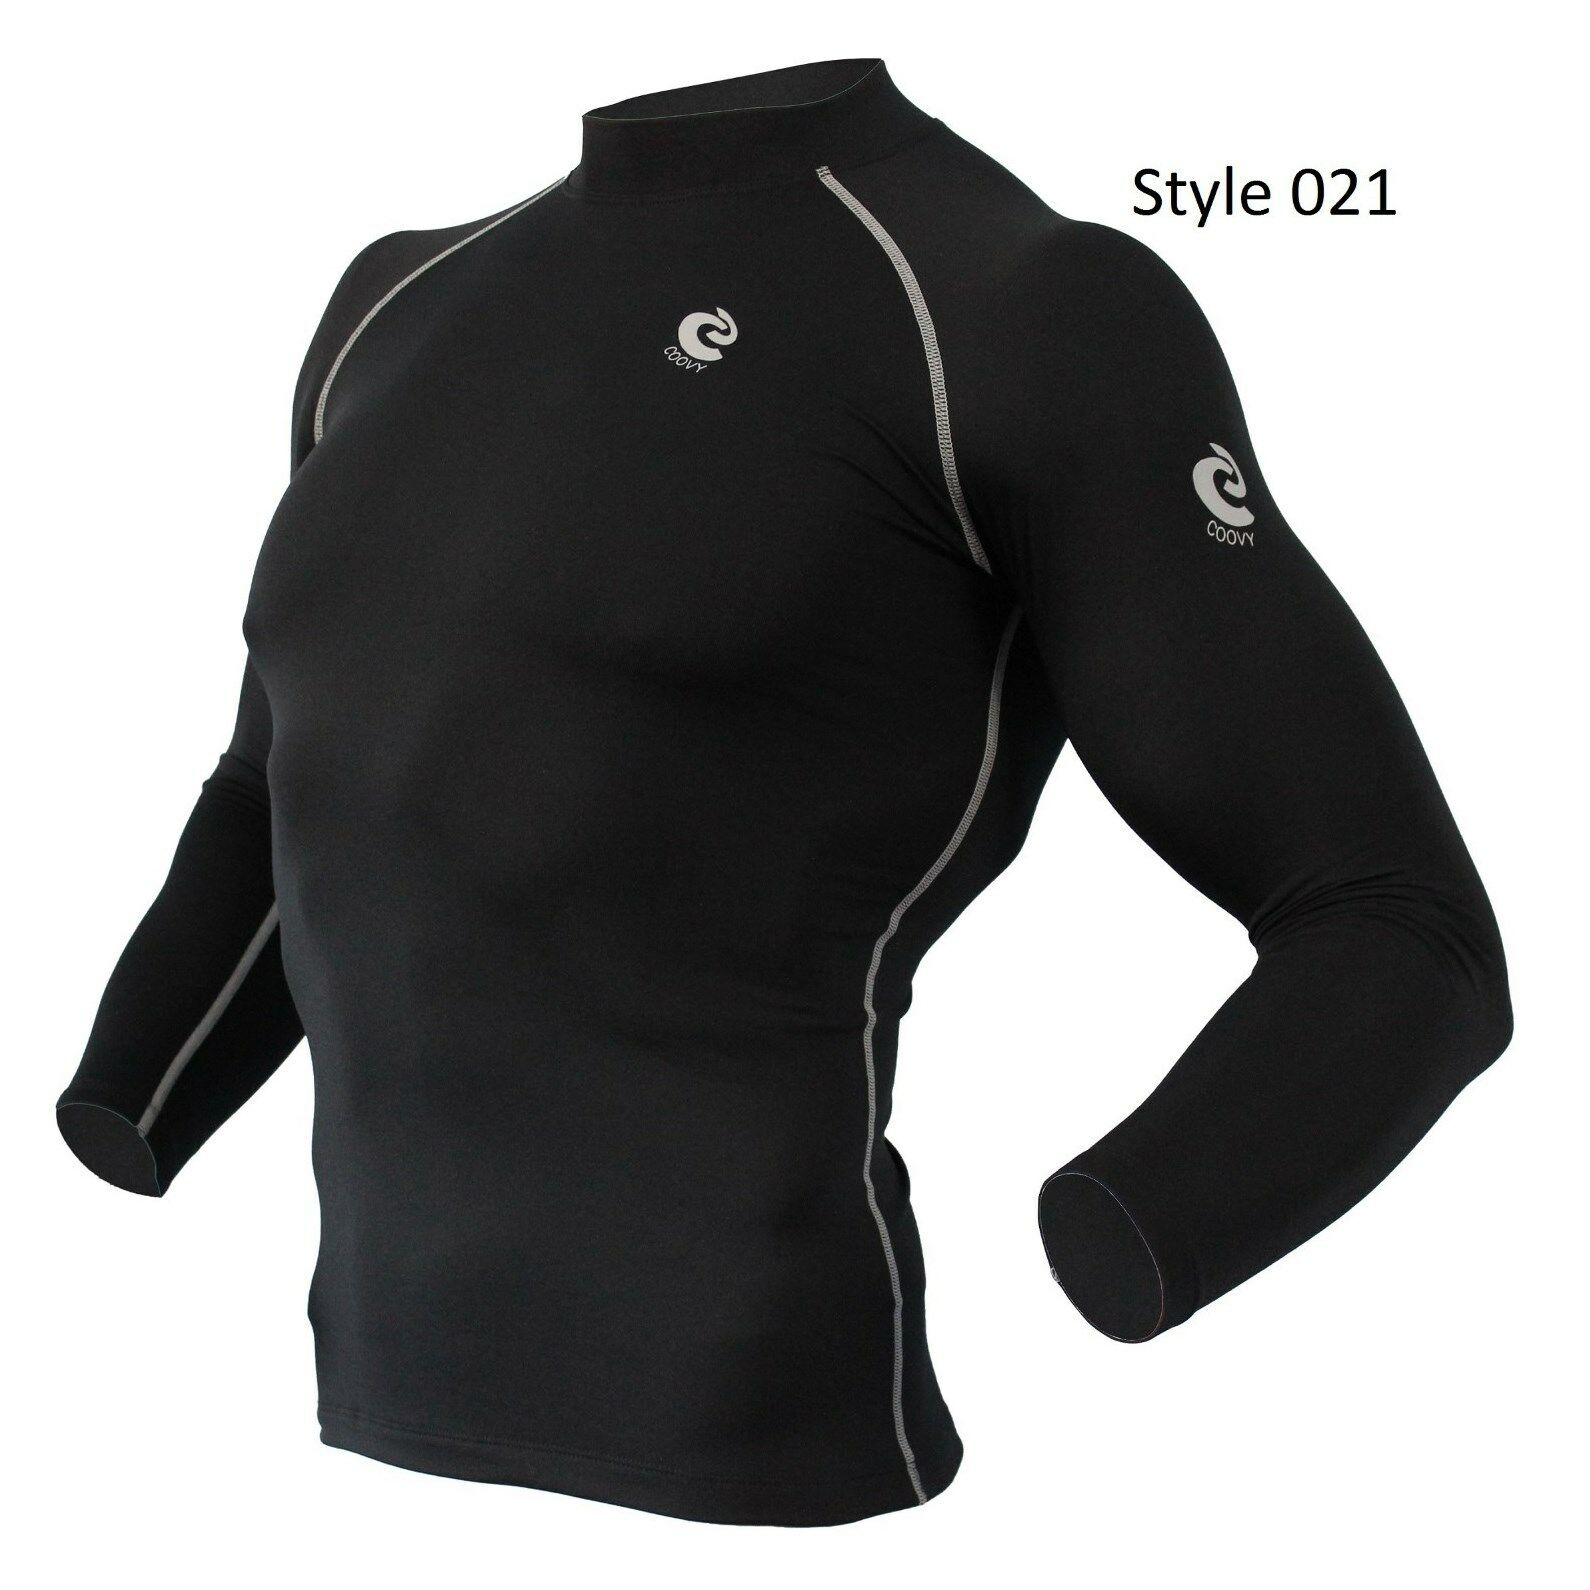 021 Black Thermal Winter Long Sleeve Shirt